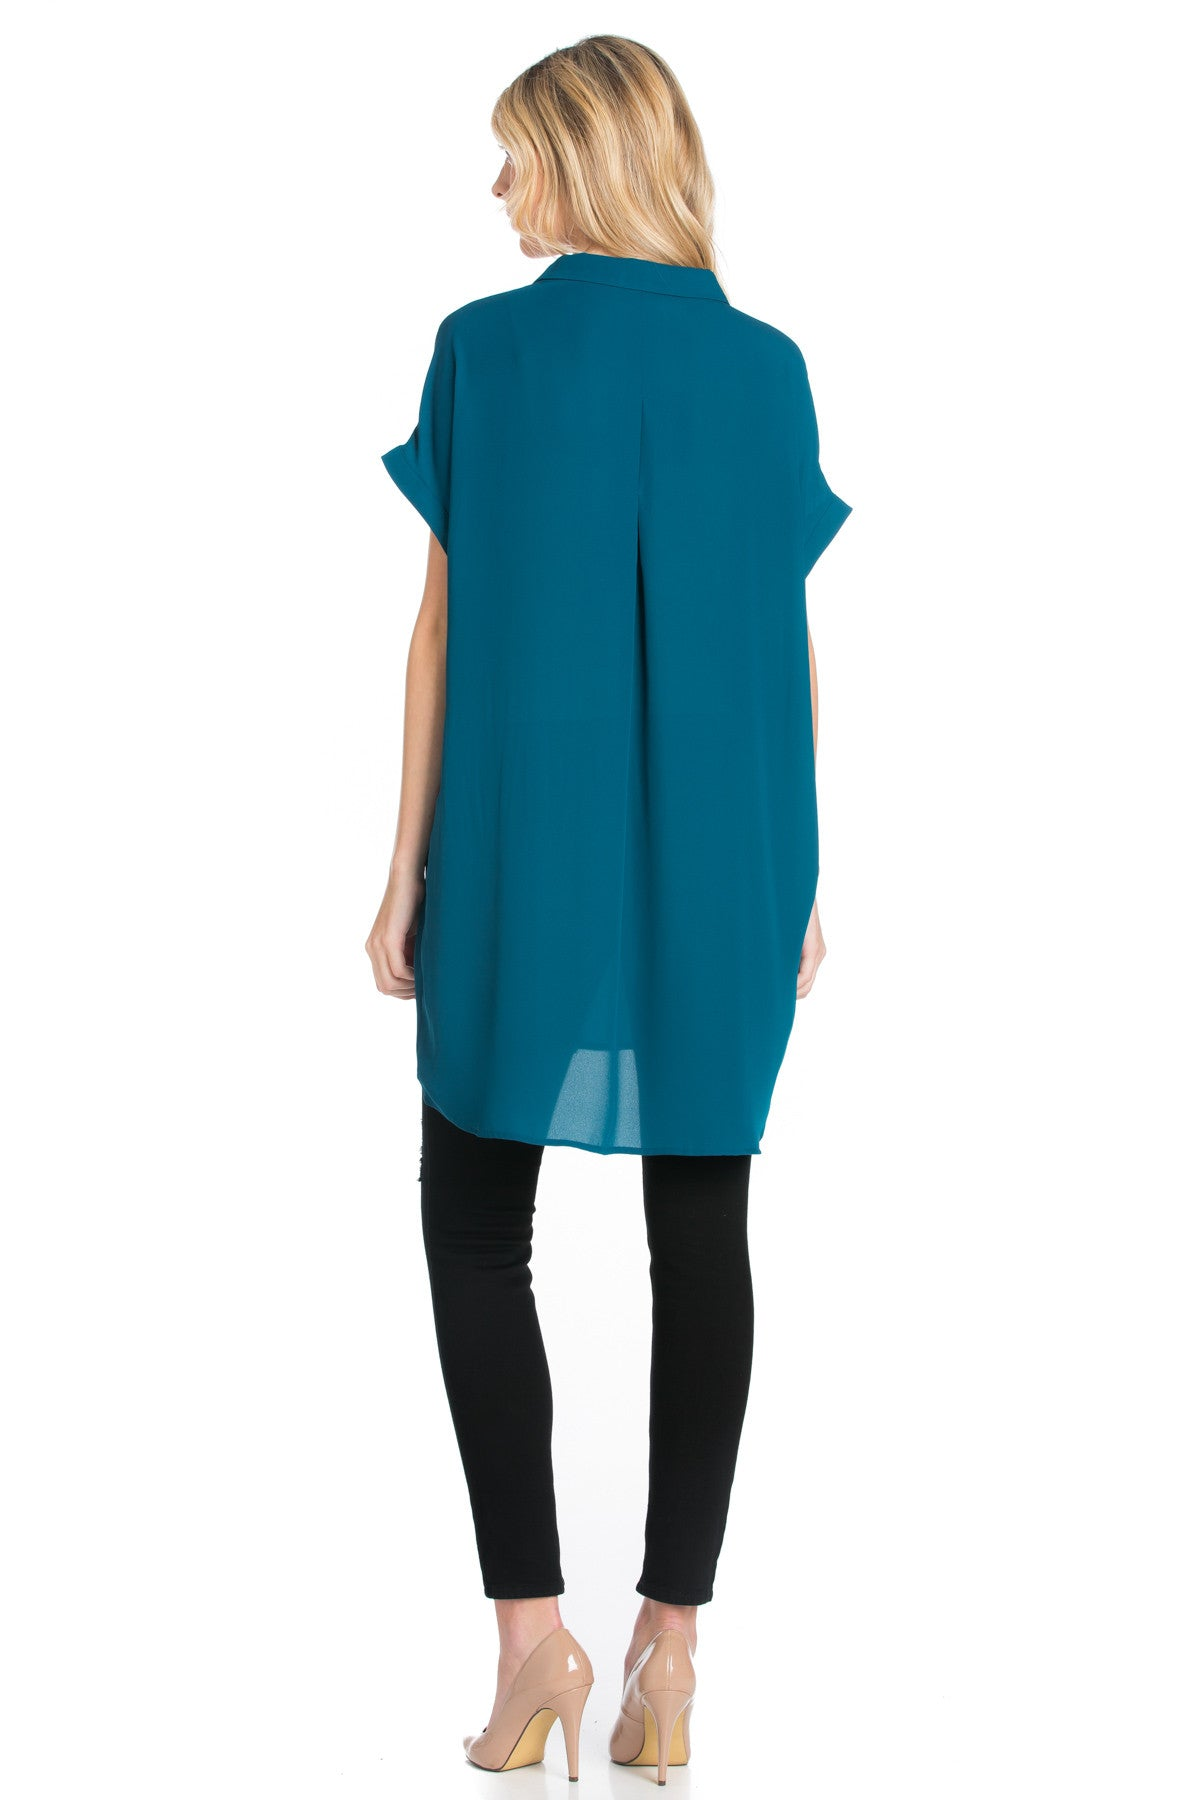 Short Sleeve Longline Button Down Chiffon Top in Teal - Tops - My Yuccie - 15